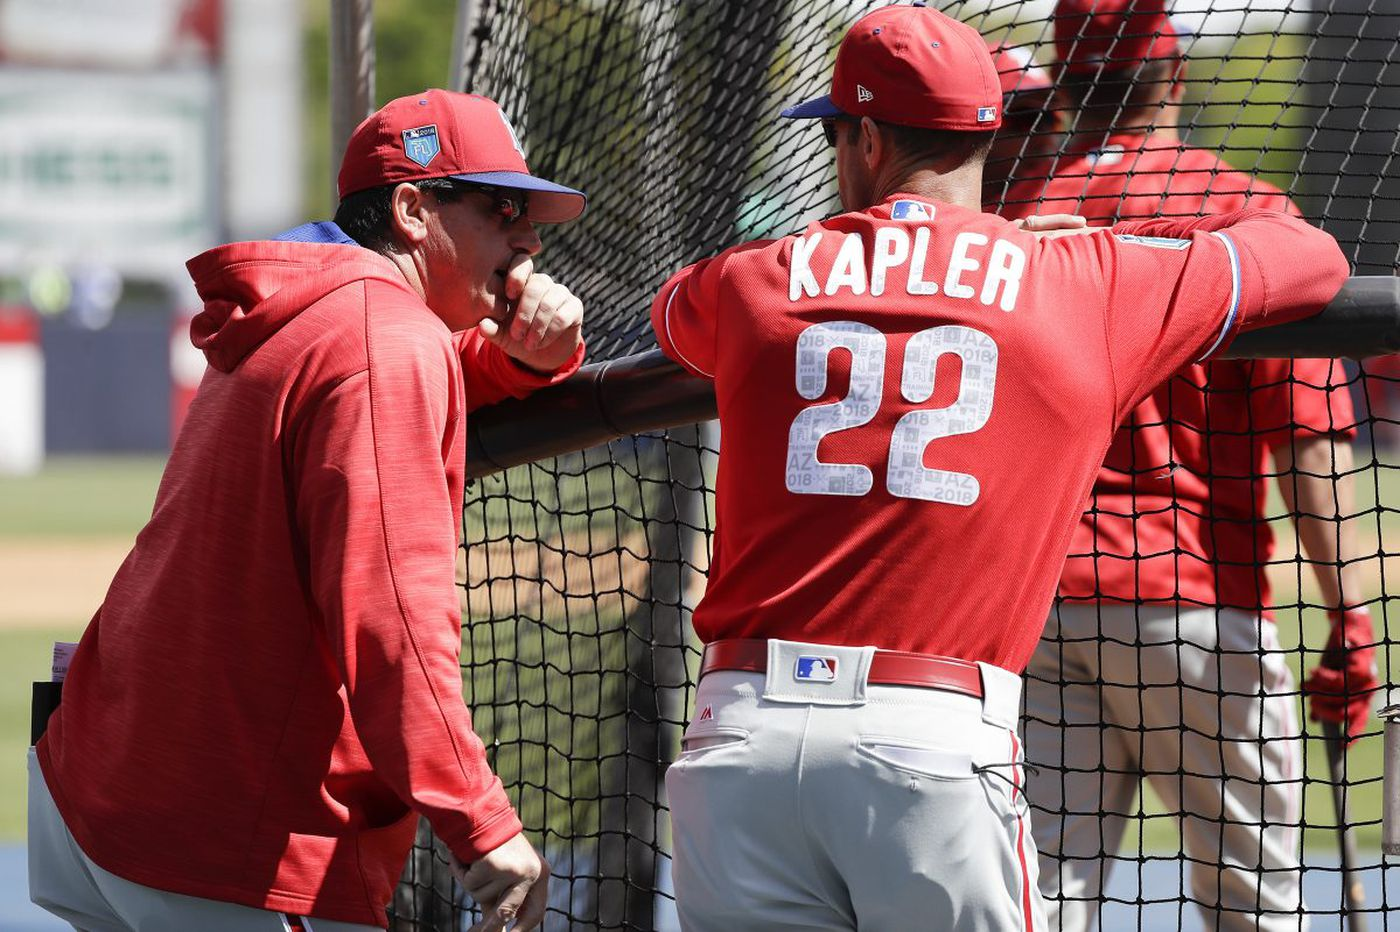 Gabe Kapler is joined in dugout by a baseball lifer in Rob Thomson | Matt Breen